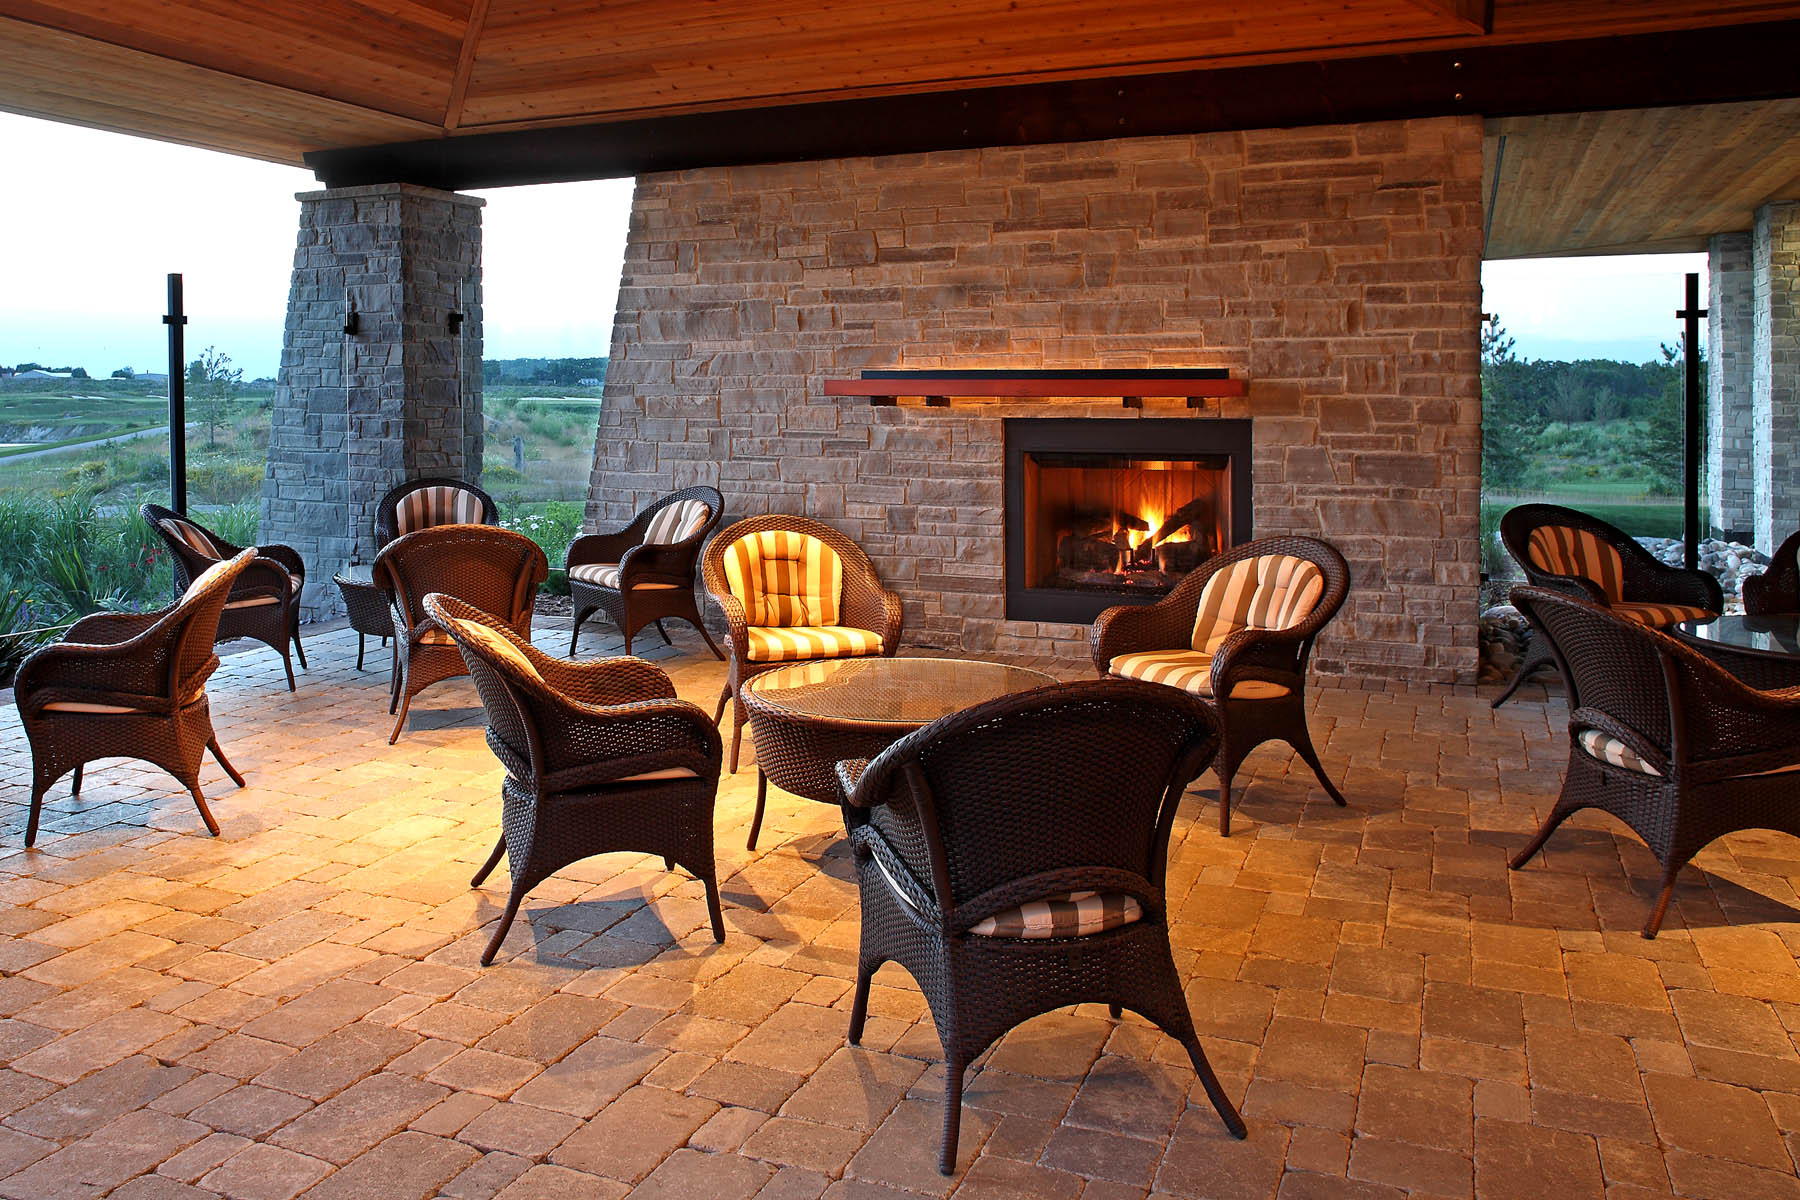 Covered outdoor patio with wicker chairs and tables, stone floor and wall fireplace feature and wood tiered ceiling looking out to green field